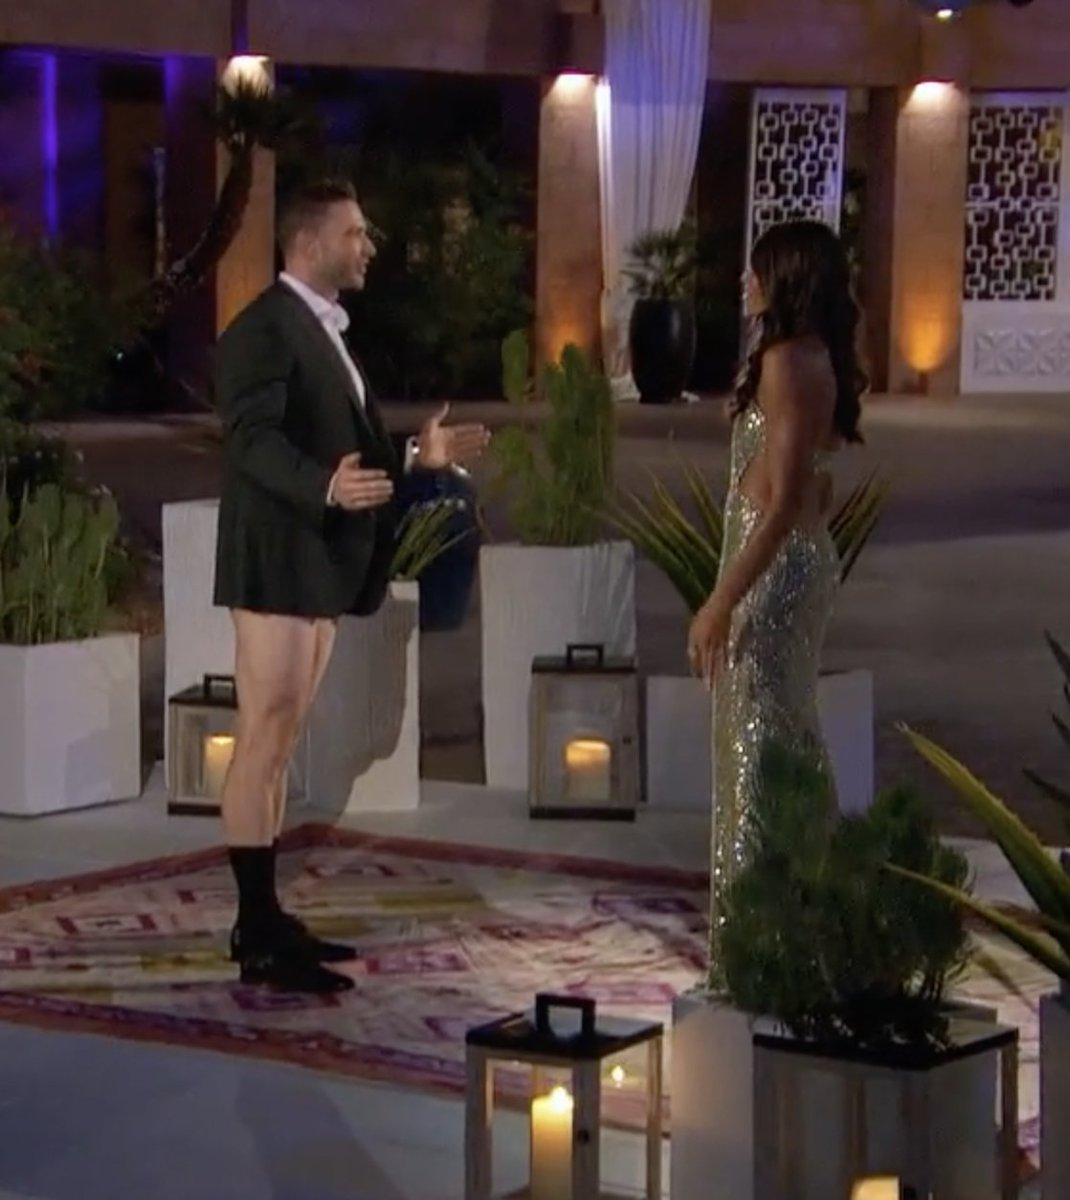 I love how it's always the pastiest men who decide to rock the shorts/no pants look ... #TheBachelorette